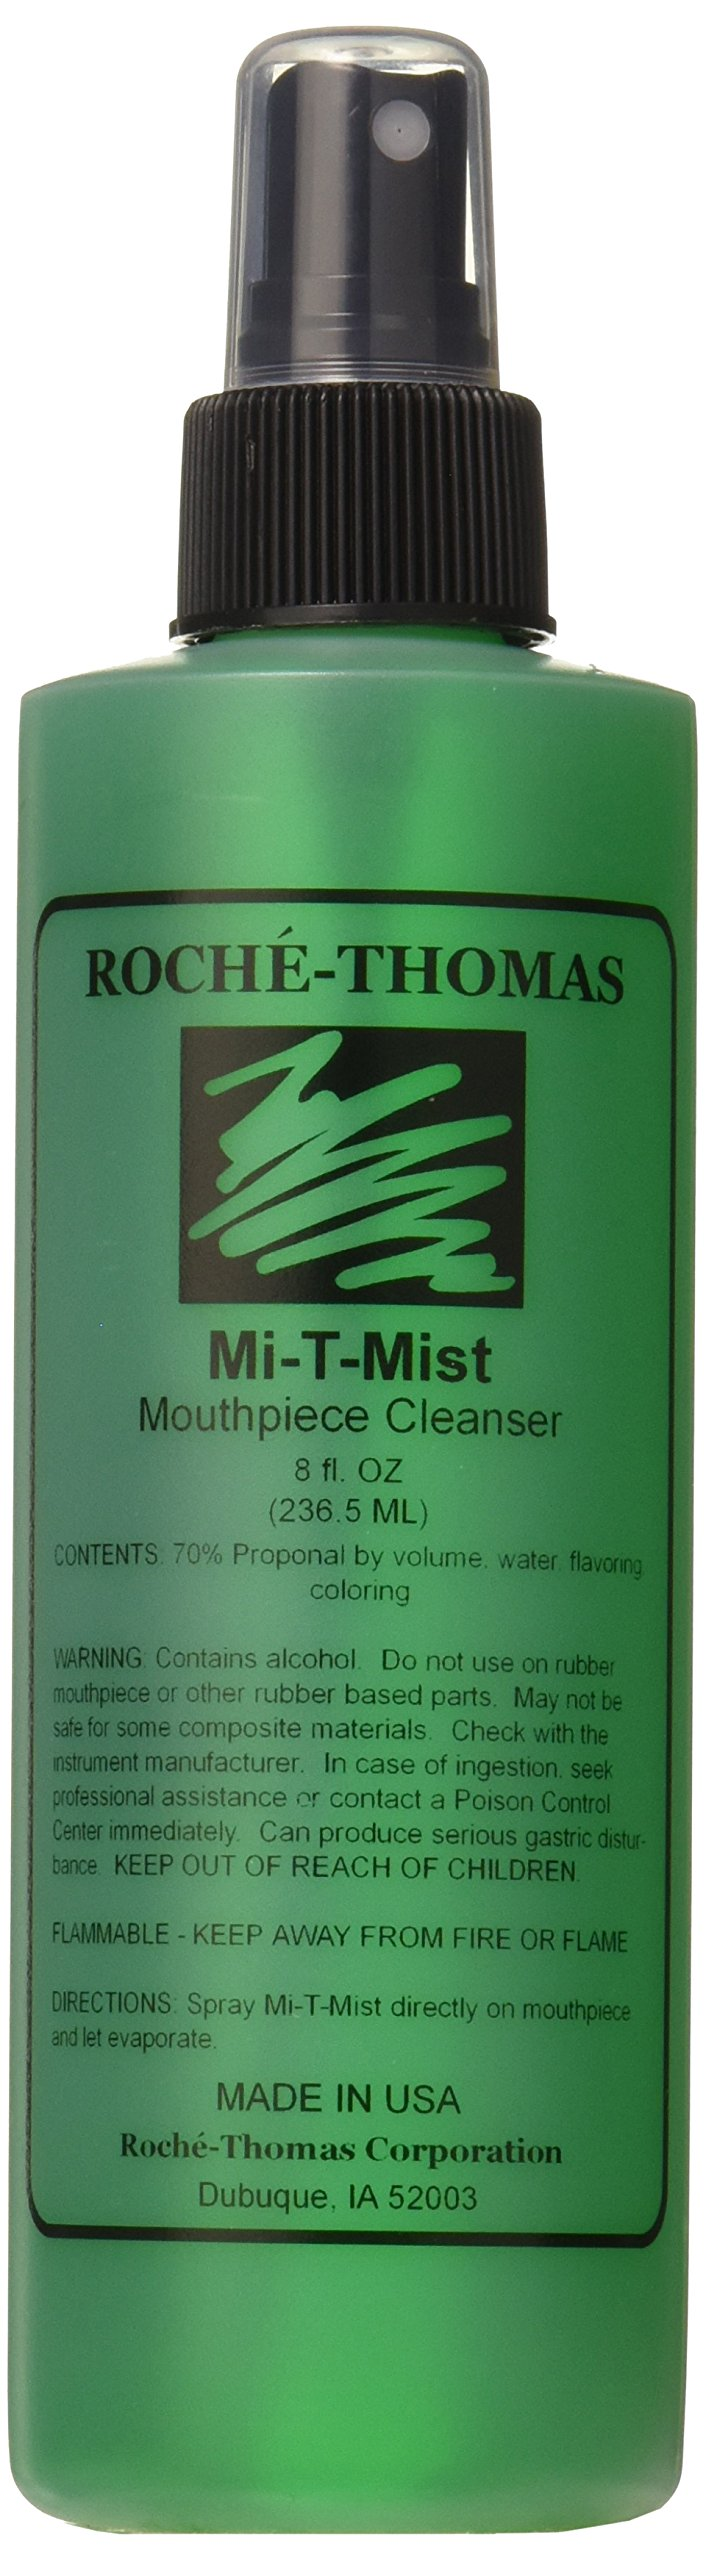 Roche Thomas Mouthpiece Disinfectant RT55